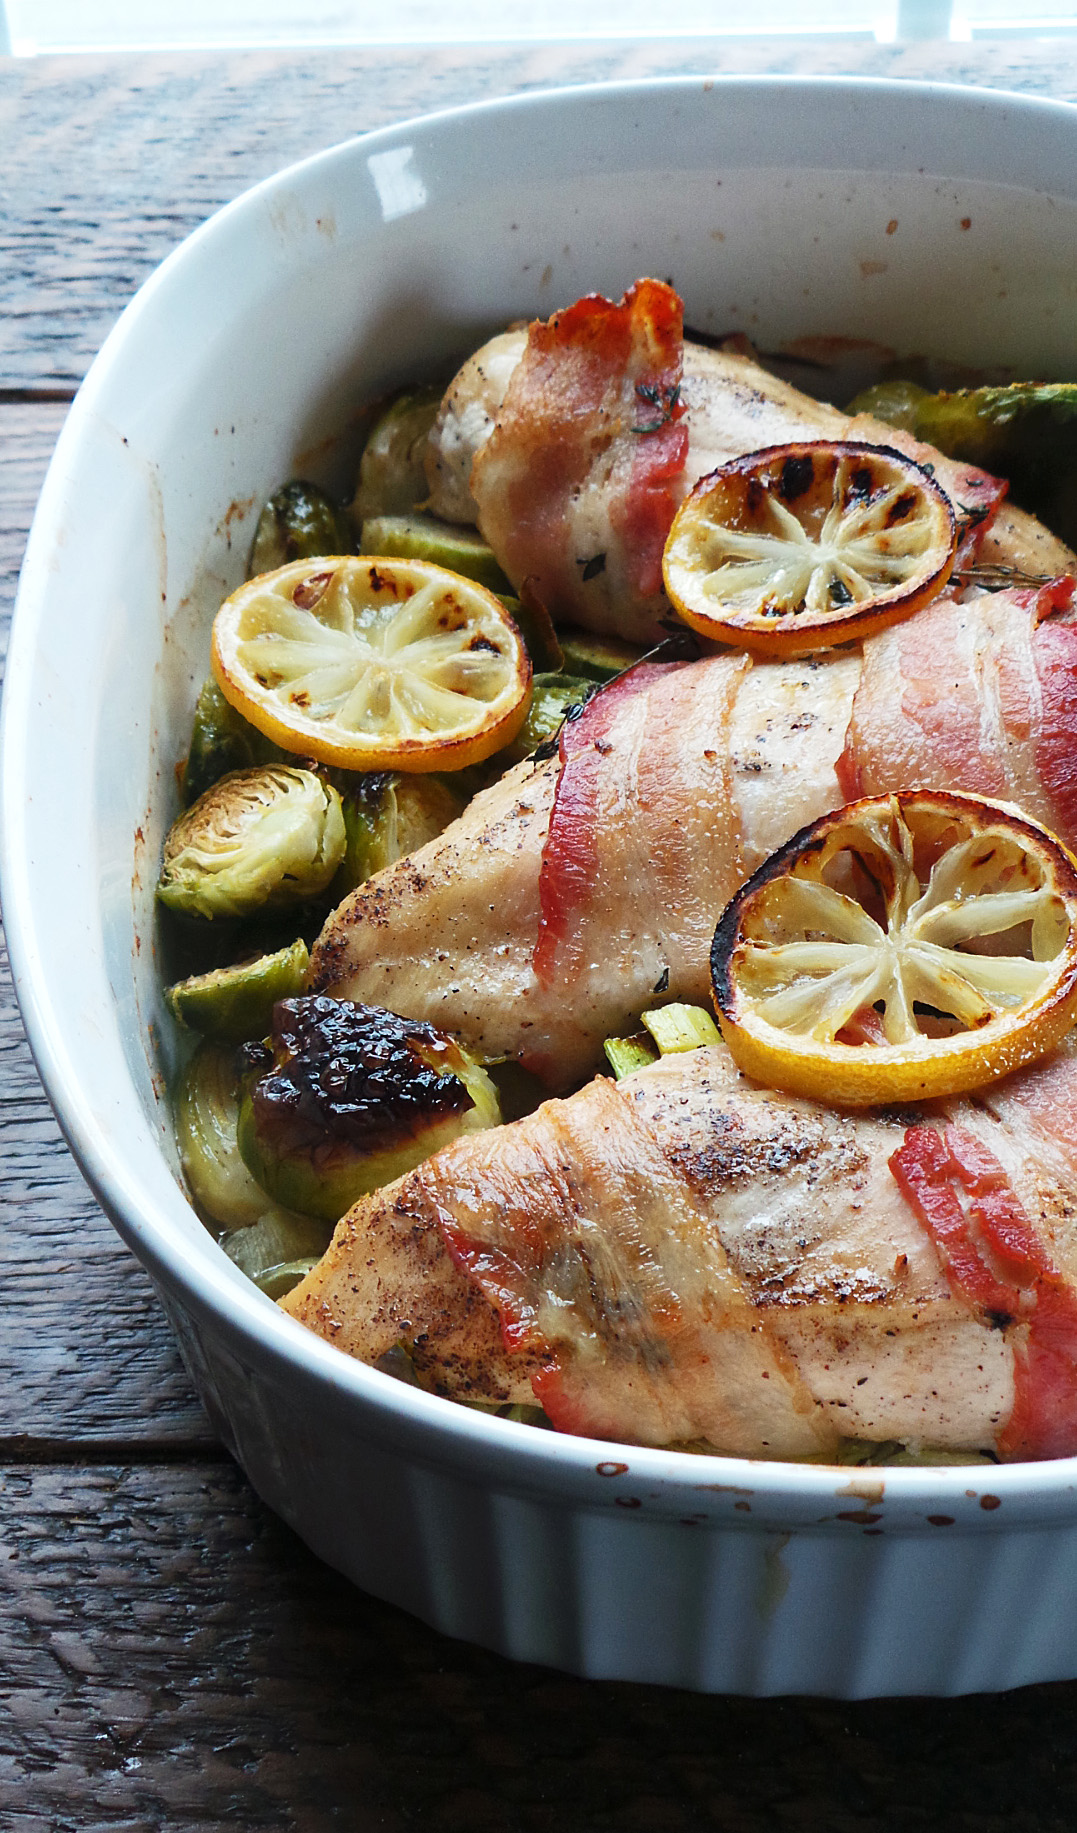 Roast Chicken Breast & Brussels Sprouts